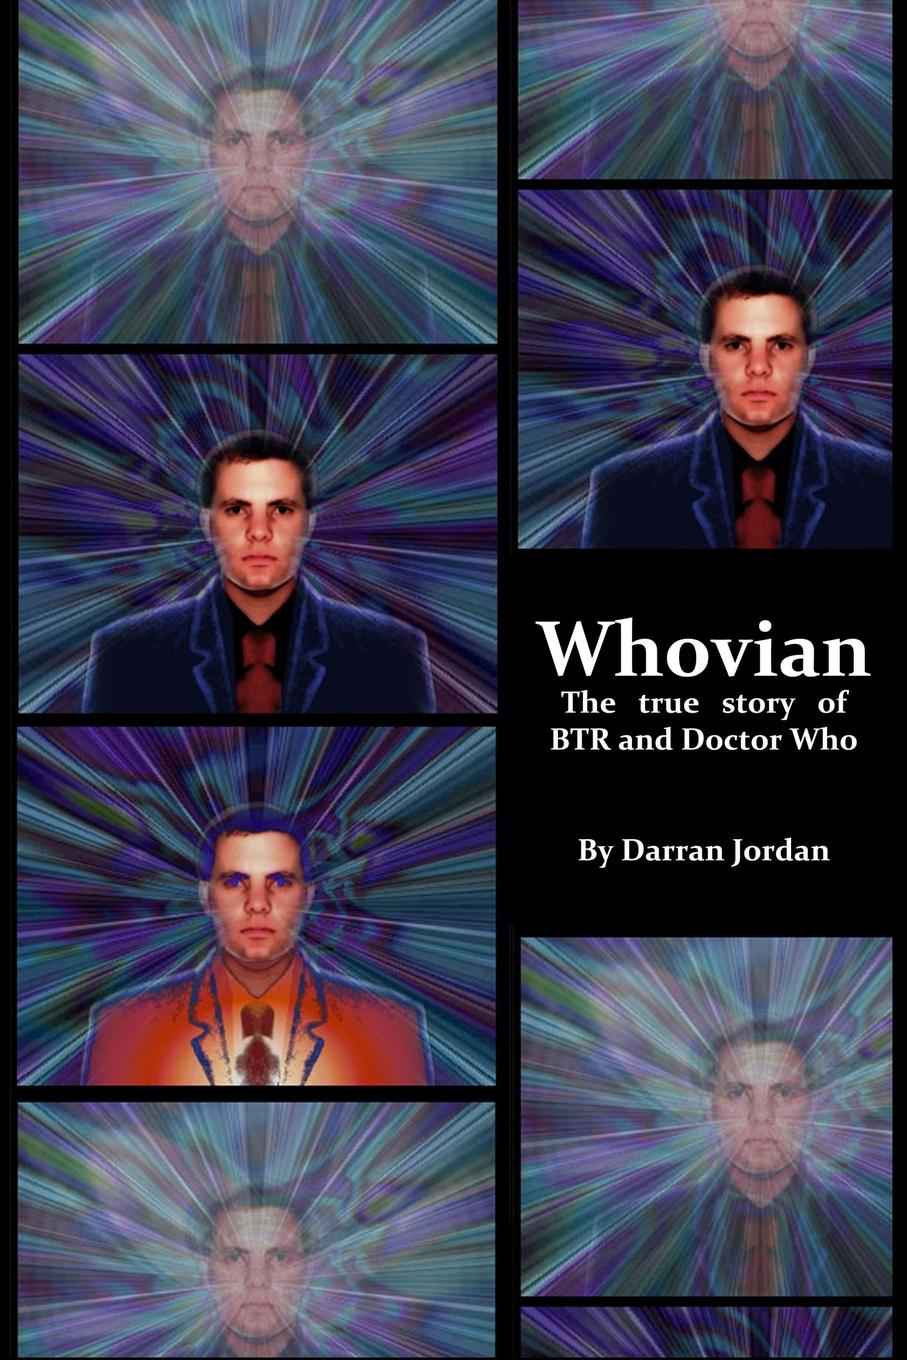 Darran Jordan Whovian. The true story of BTR and Doctor Who